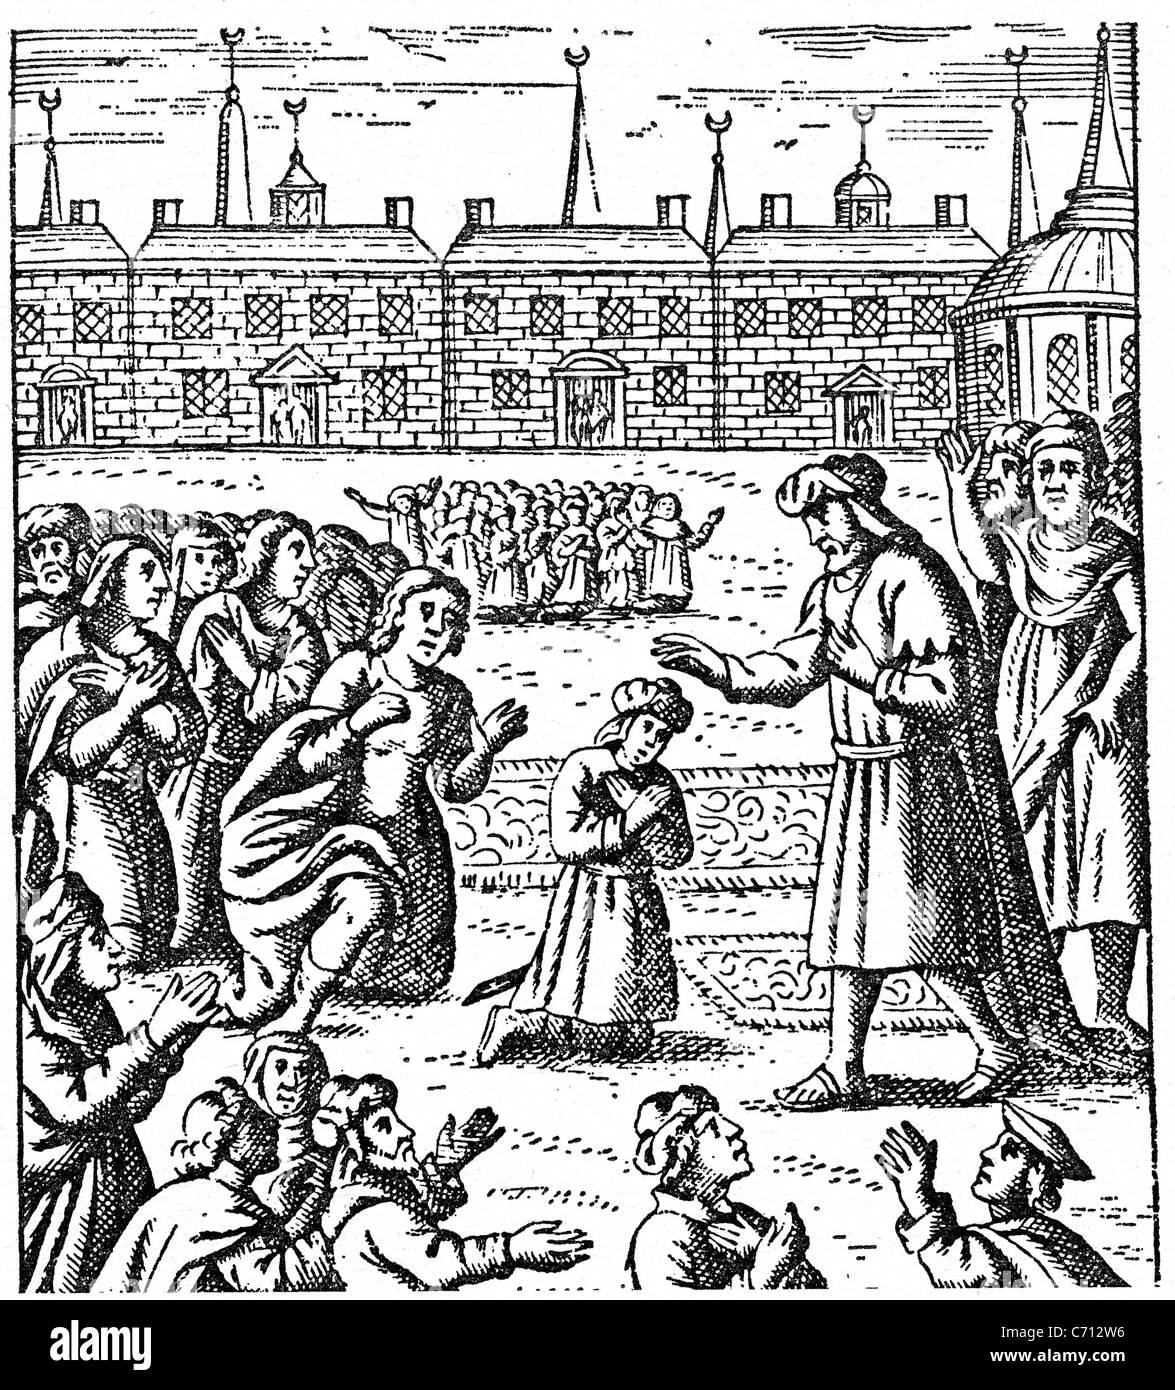 SABBATAI ZEVI (1626-1676) Sephardic Rabbi blesses some of his followers in  an English woodcut from 1685